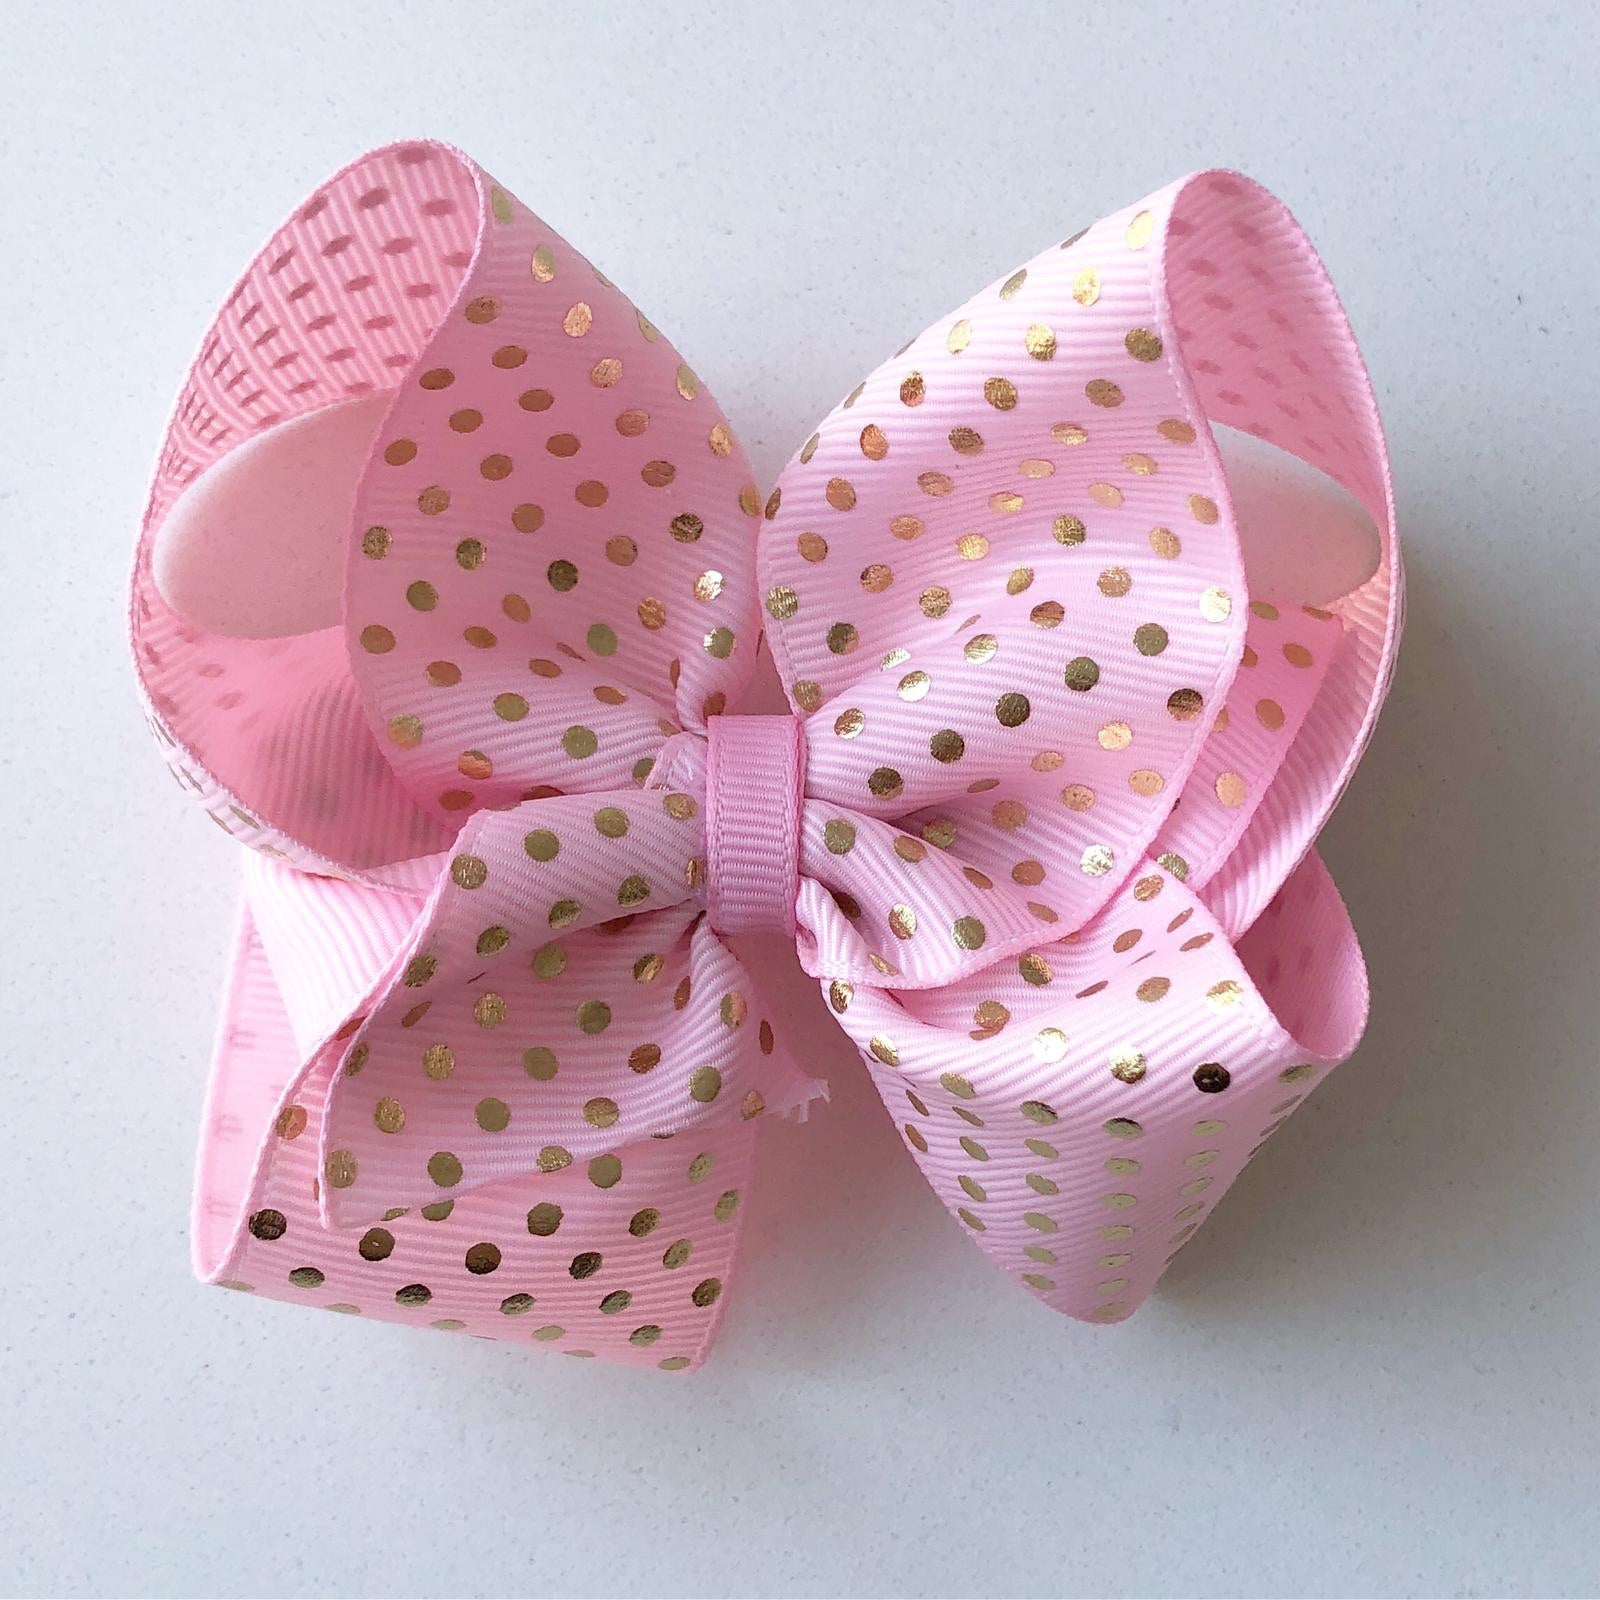 Go Dotty for Lili Xmas Bows